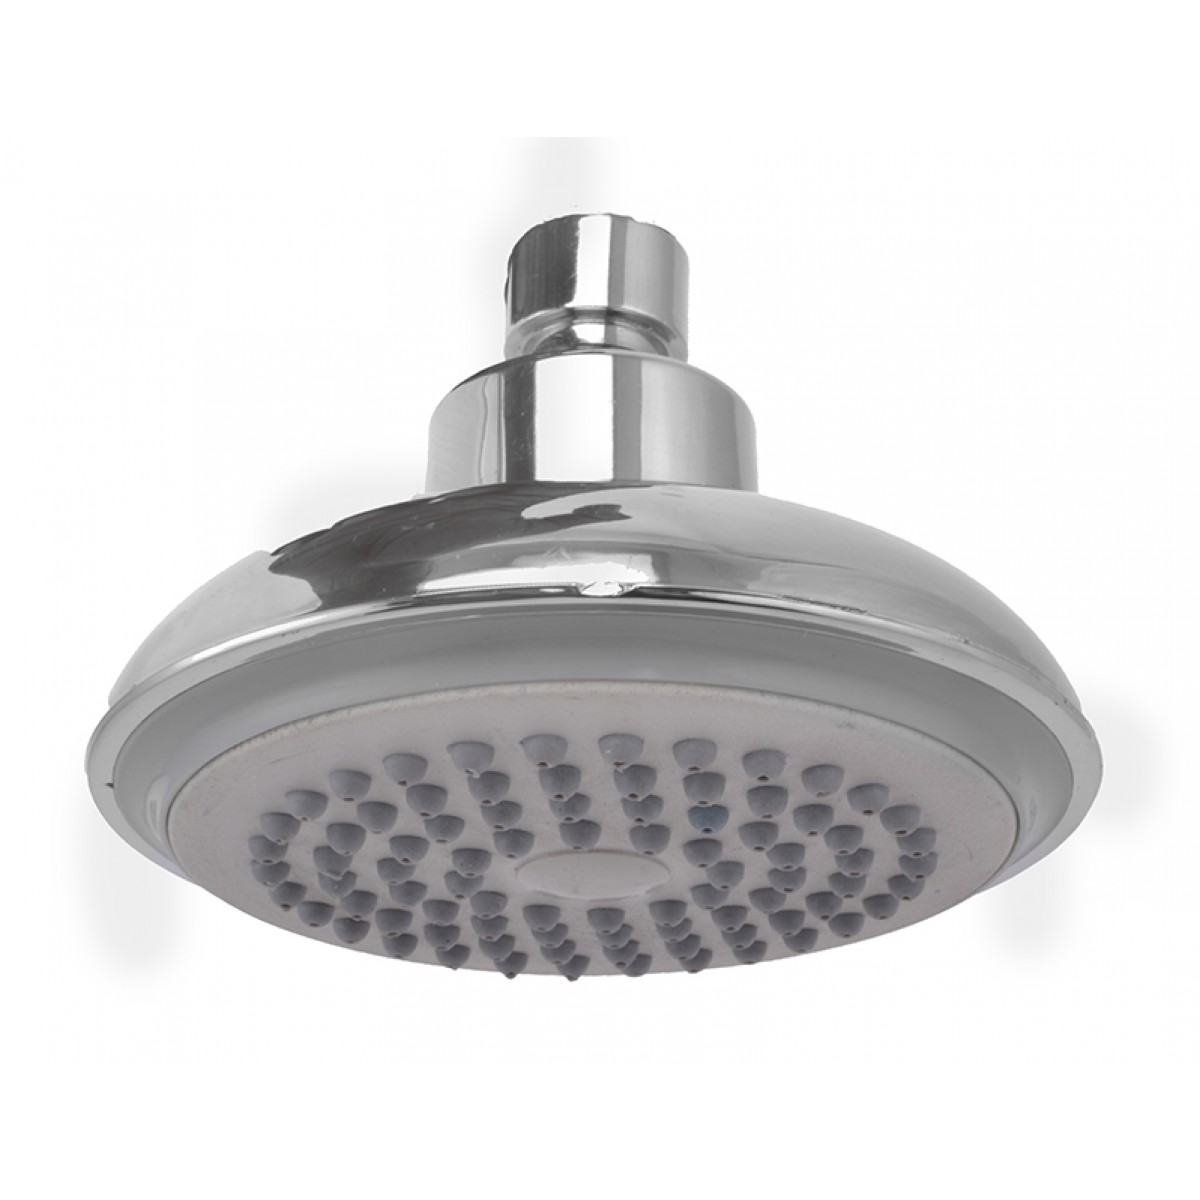 Buy Online Bathroom Shower Head - ABS Shower Head - 32x6x5 - Rado ...